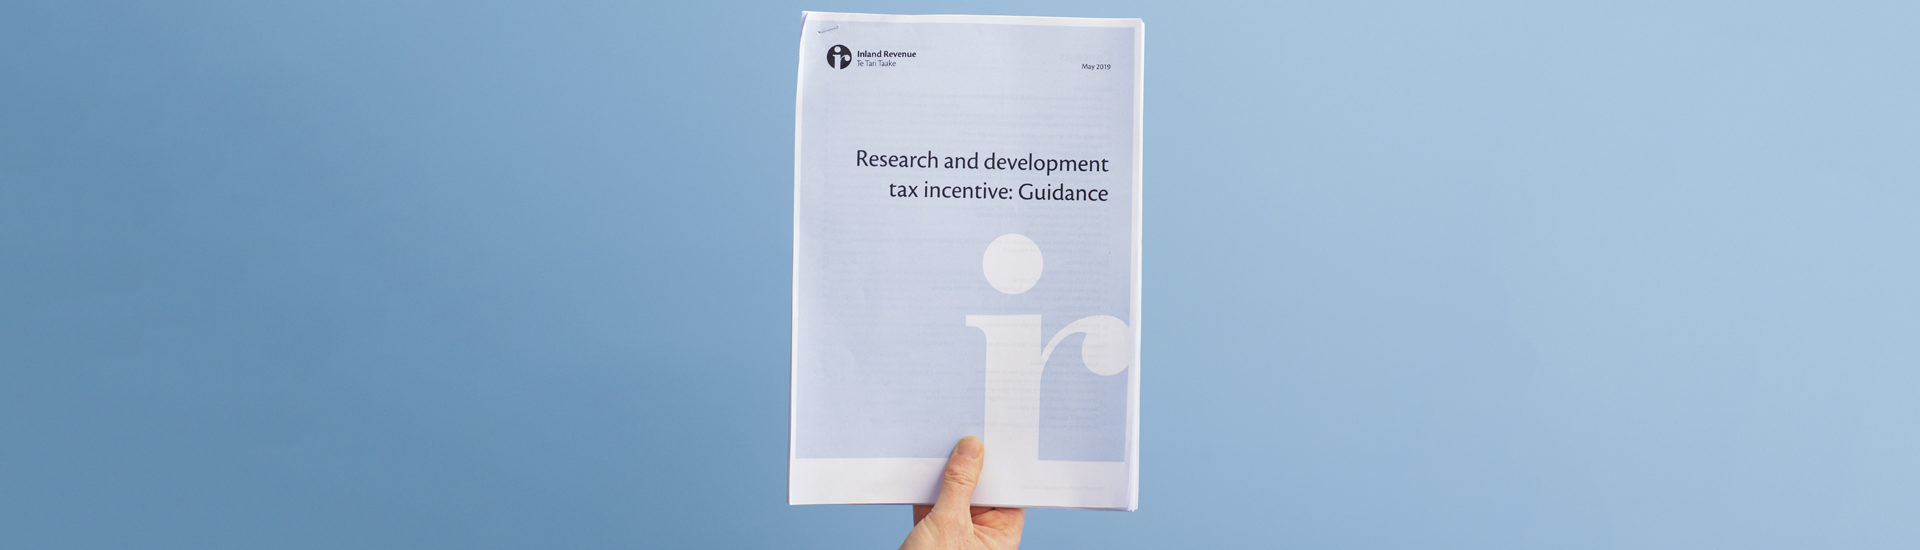 R&D Tax incentive: Guidance